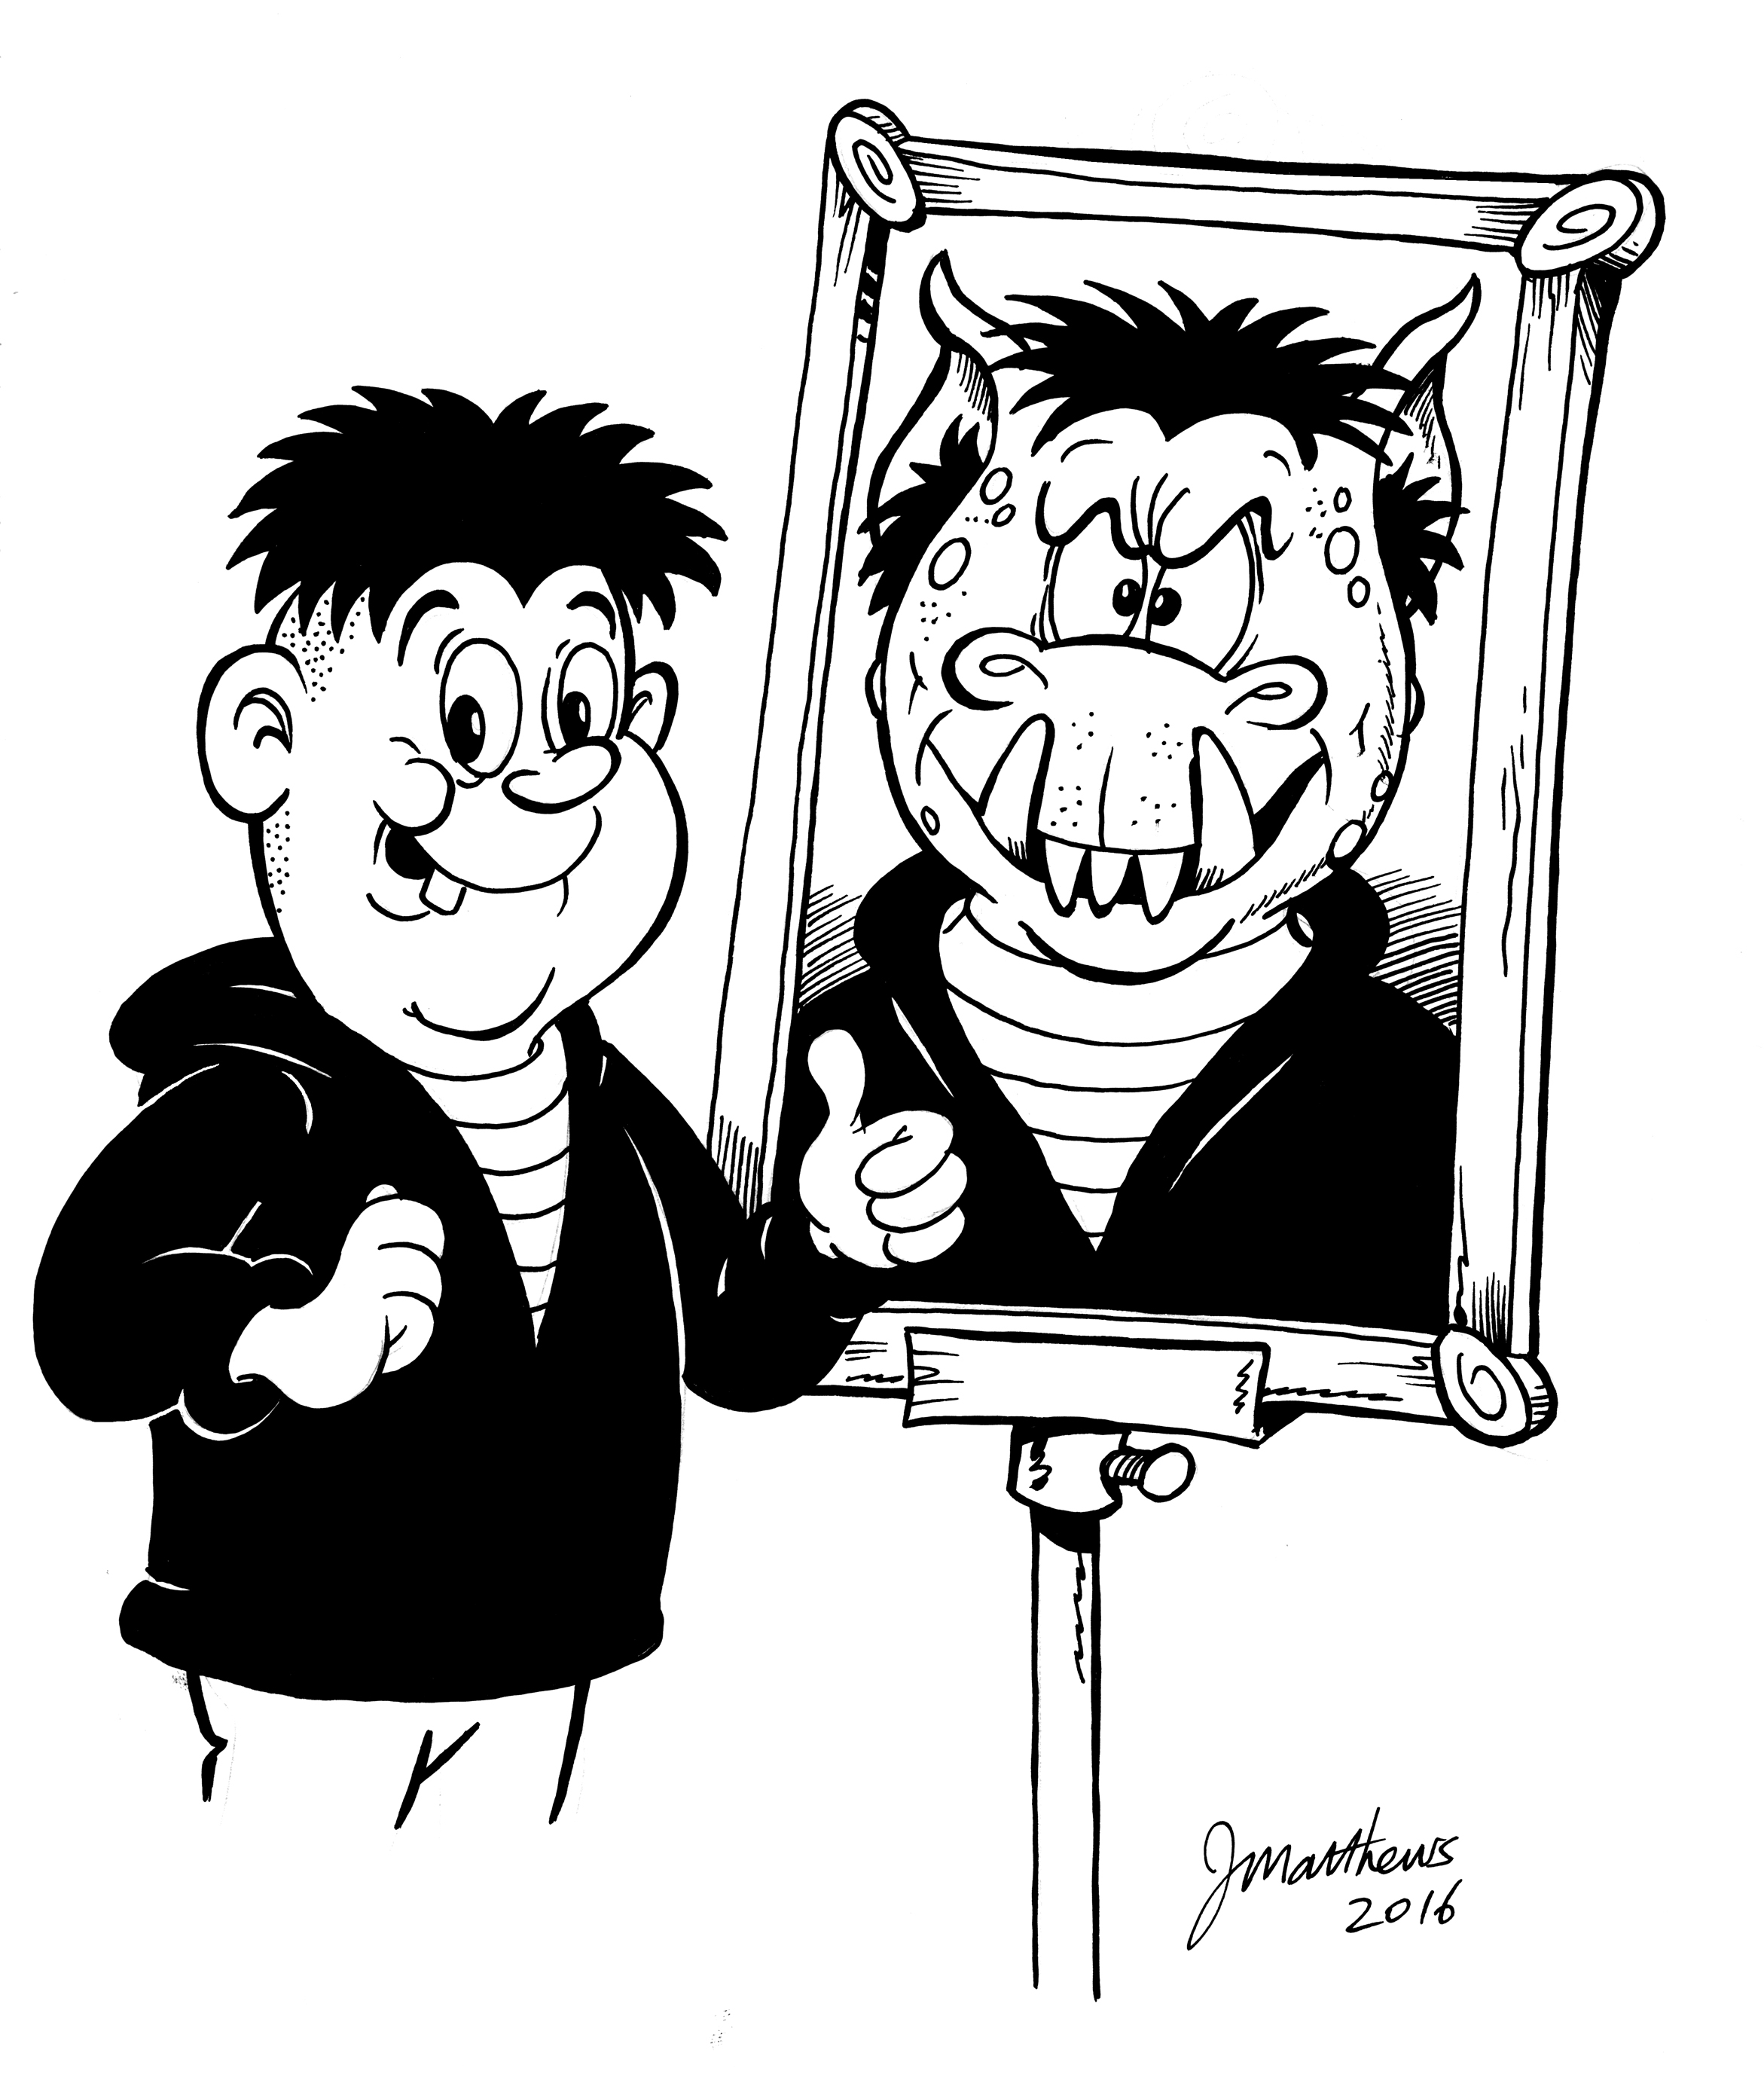 A modern look to Ken Reid's popular character Faceache, by Joe Matthews.